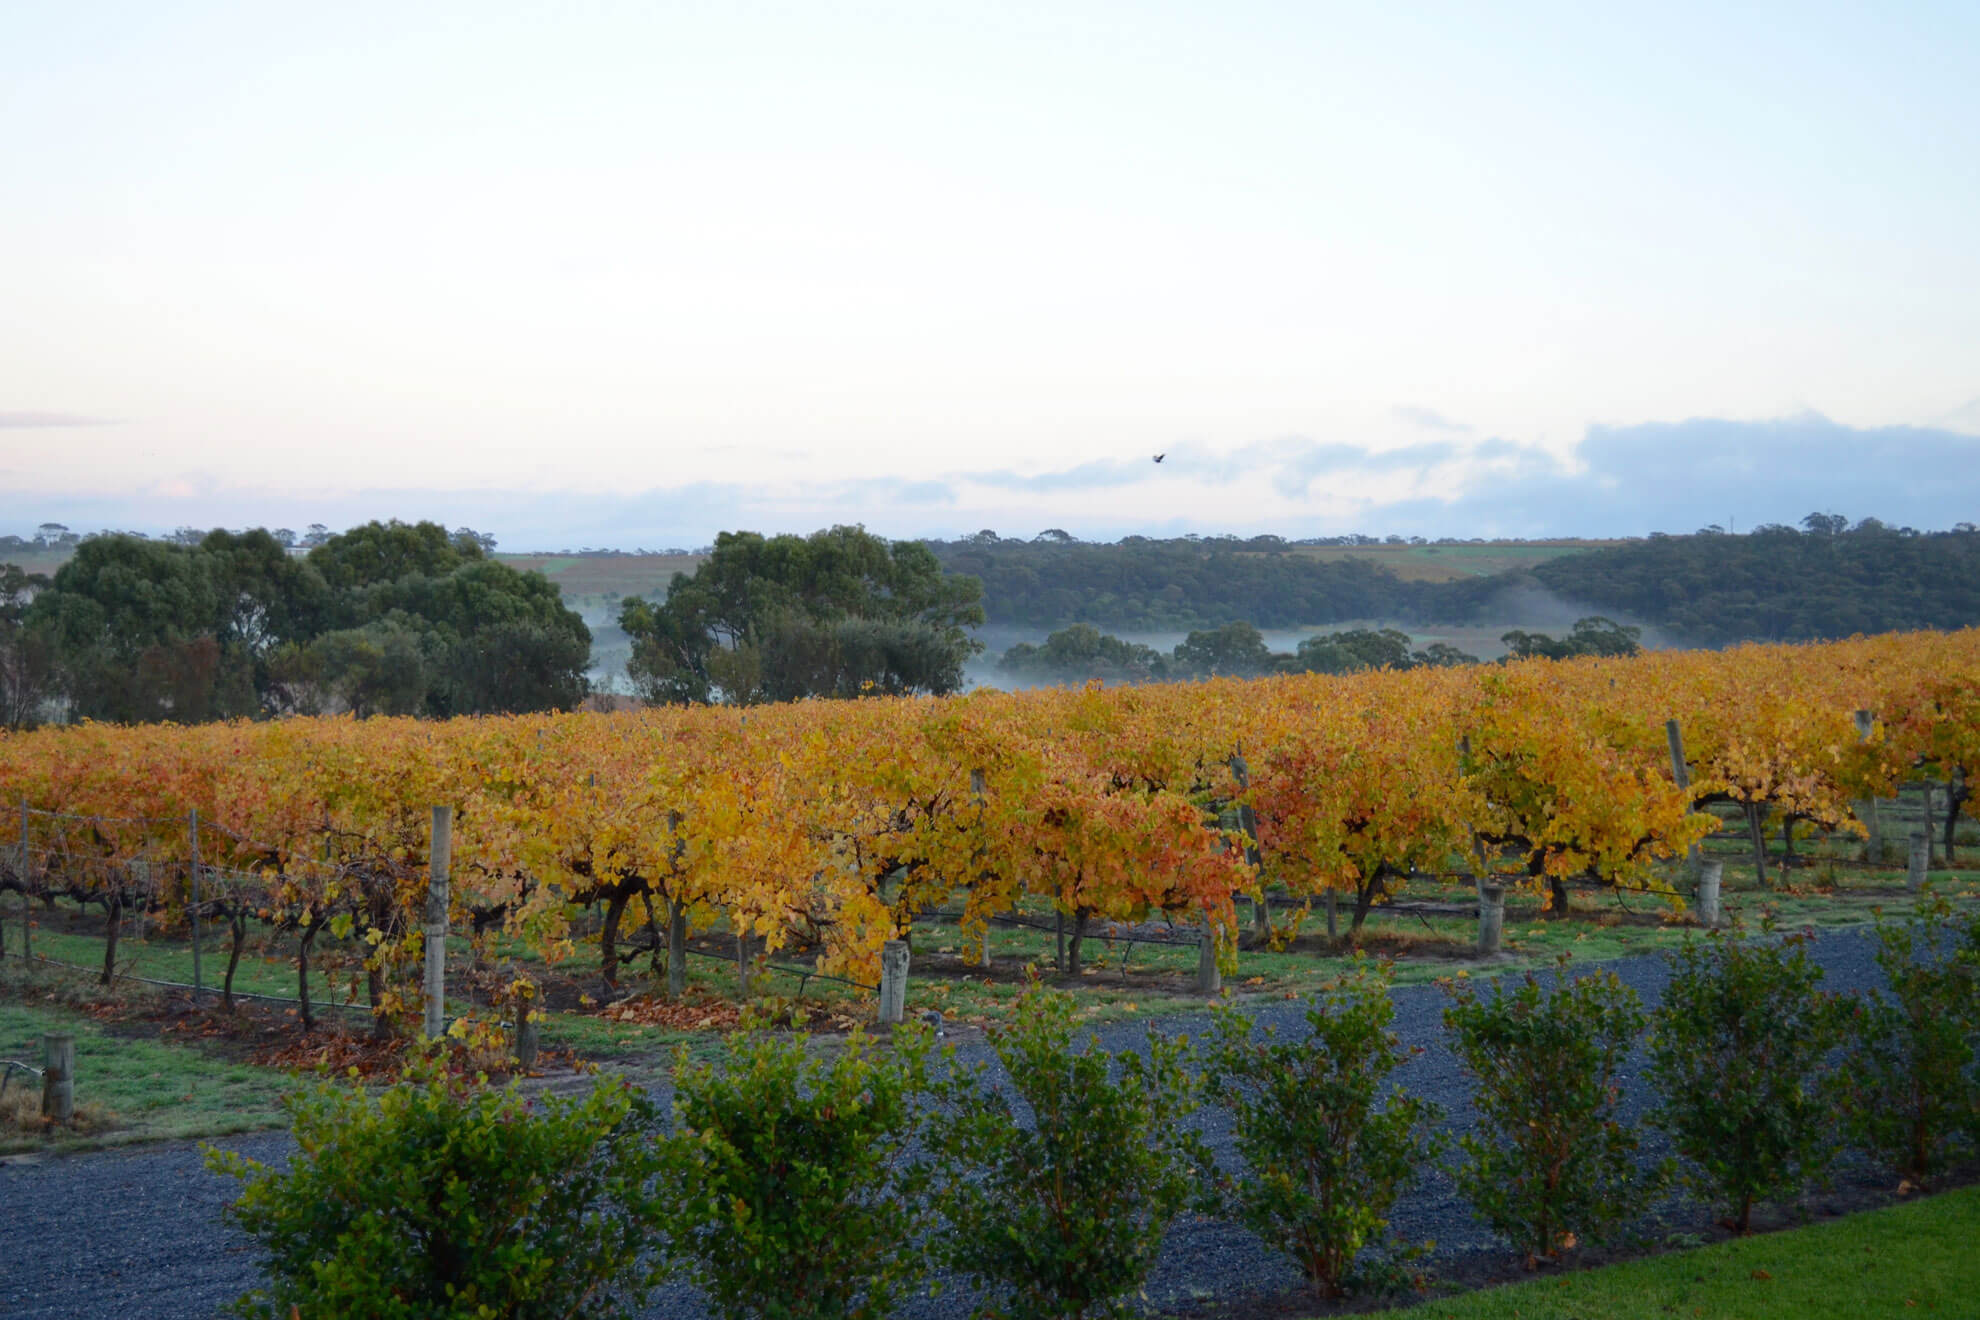 Morning mist views across the vines.